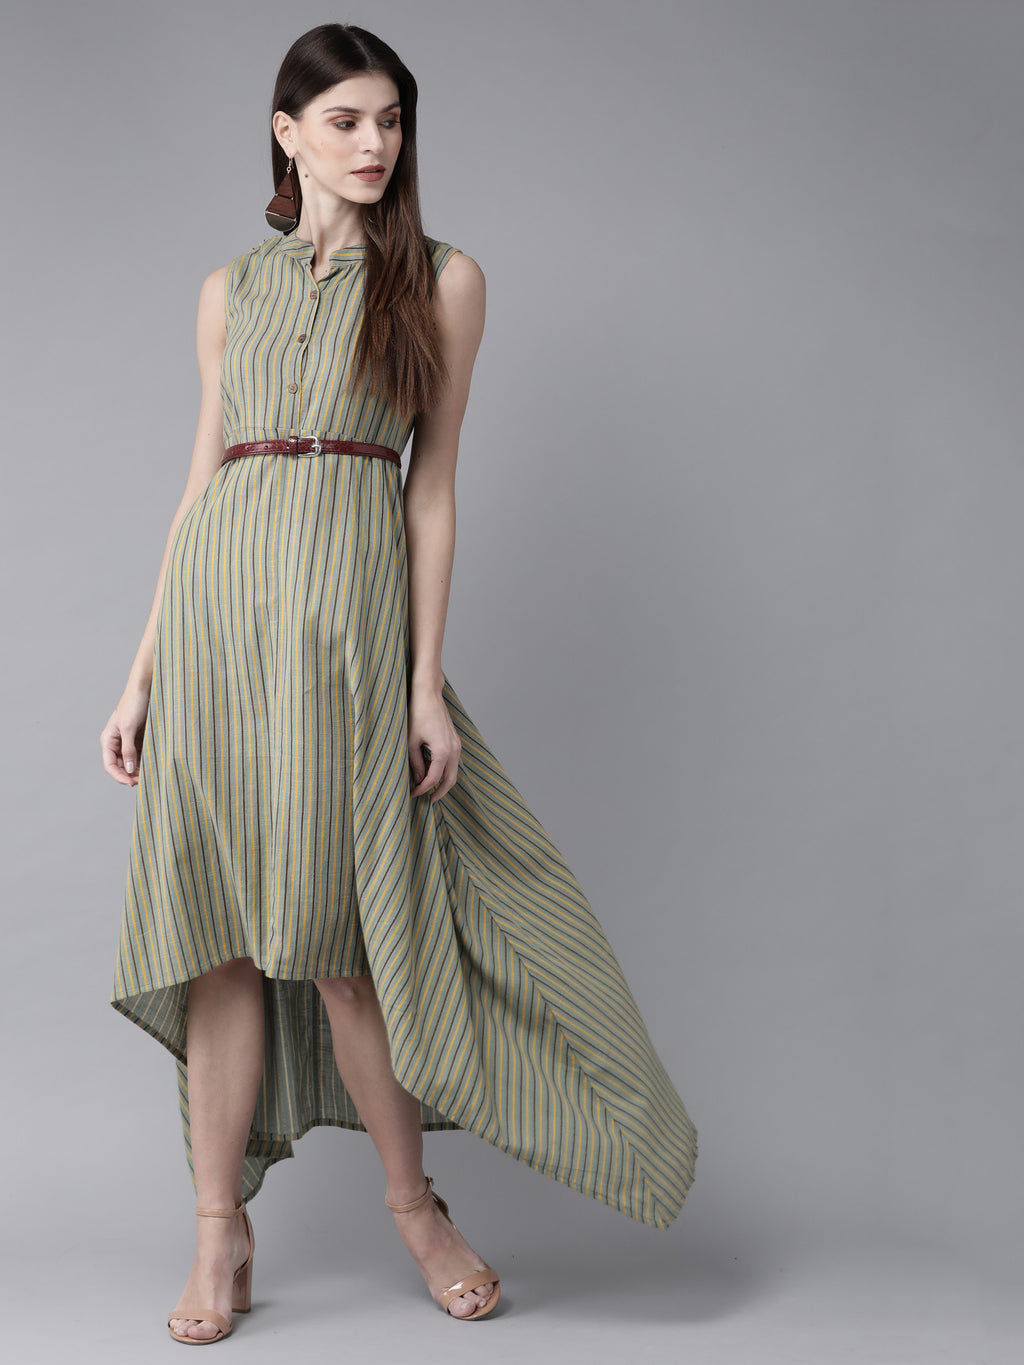 Green & Yellow Striped Maxi Dress ( Fully Stitched)